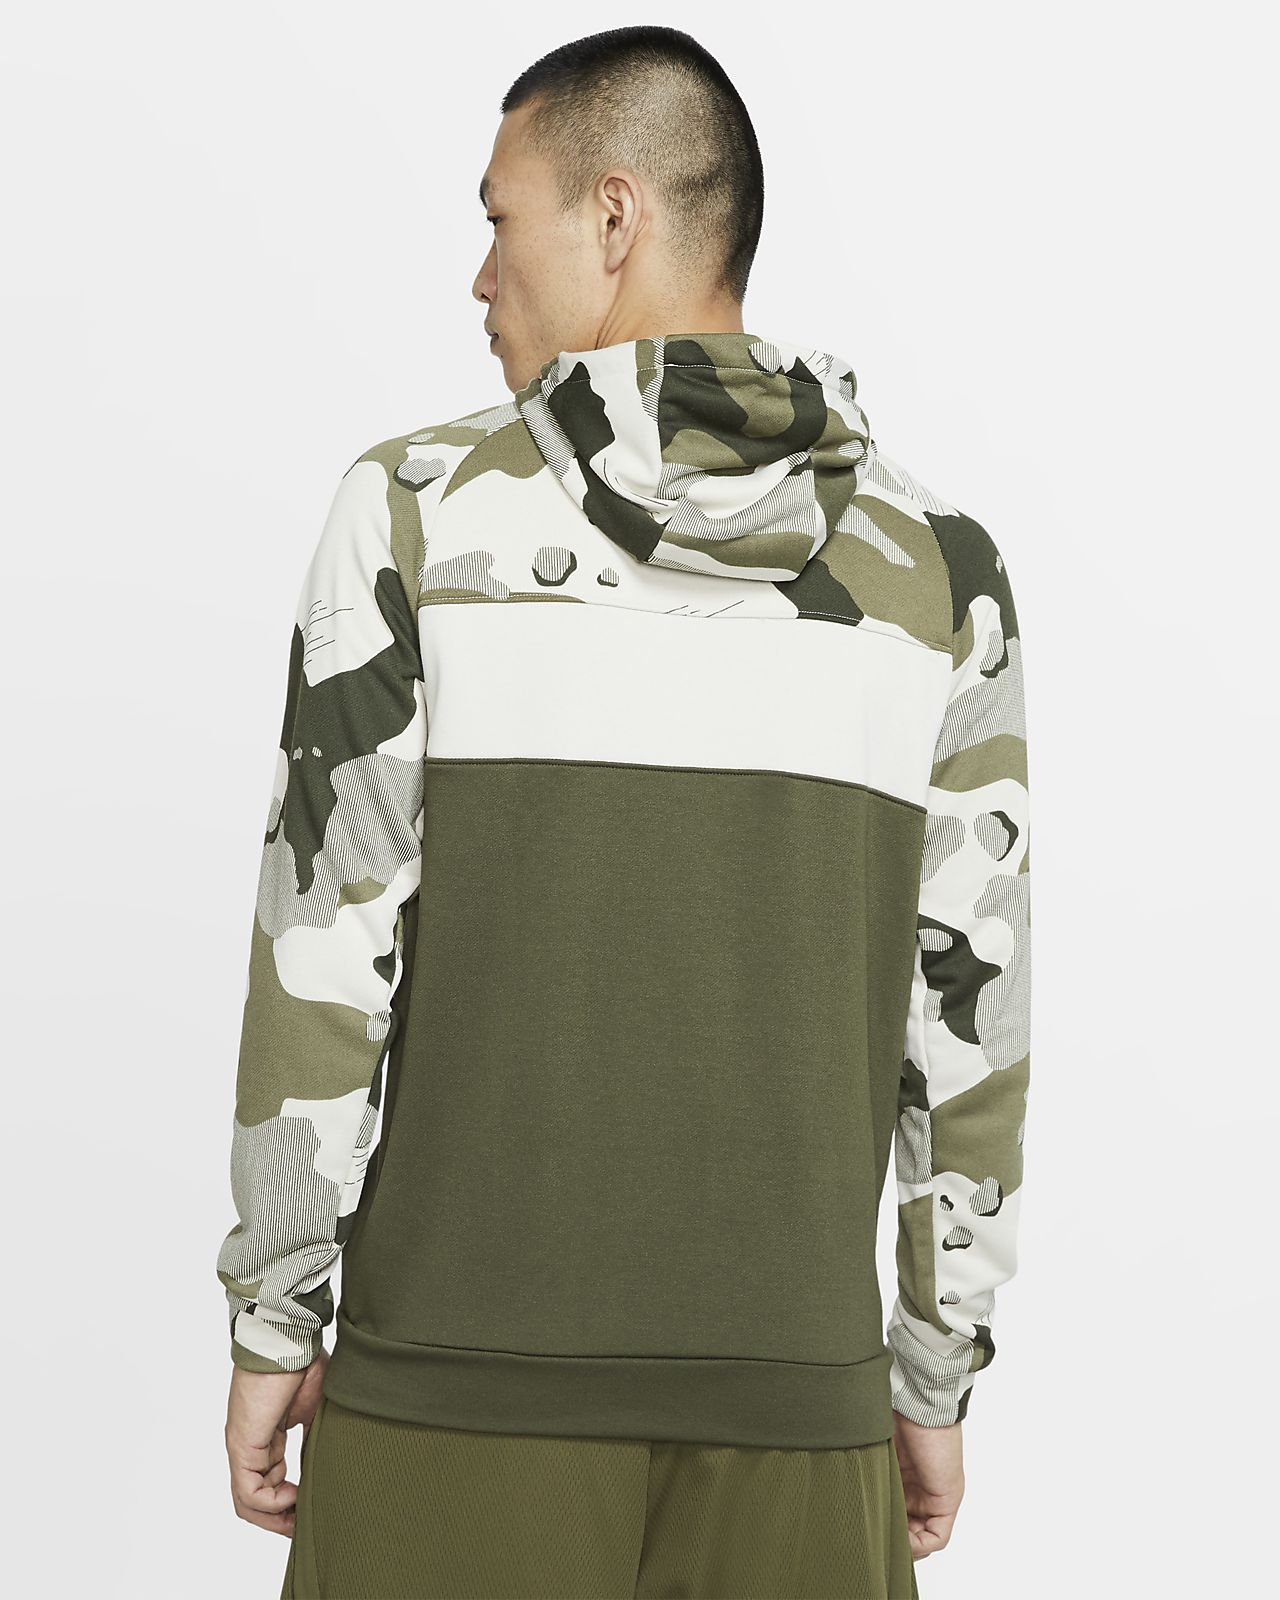 Nike Camouflage Hoodies & Sweatshirts for Men for Sale